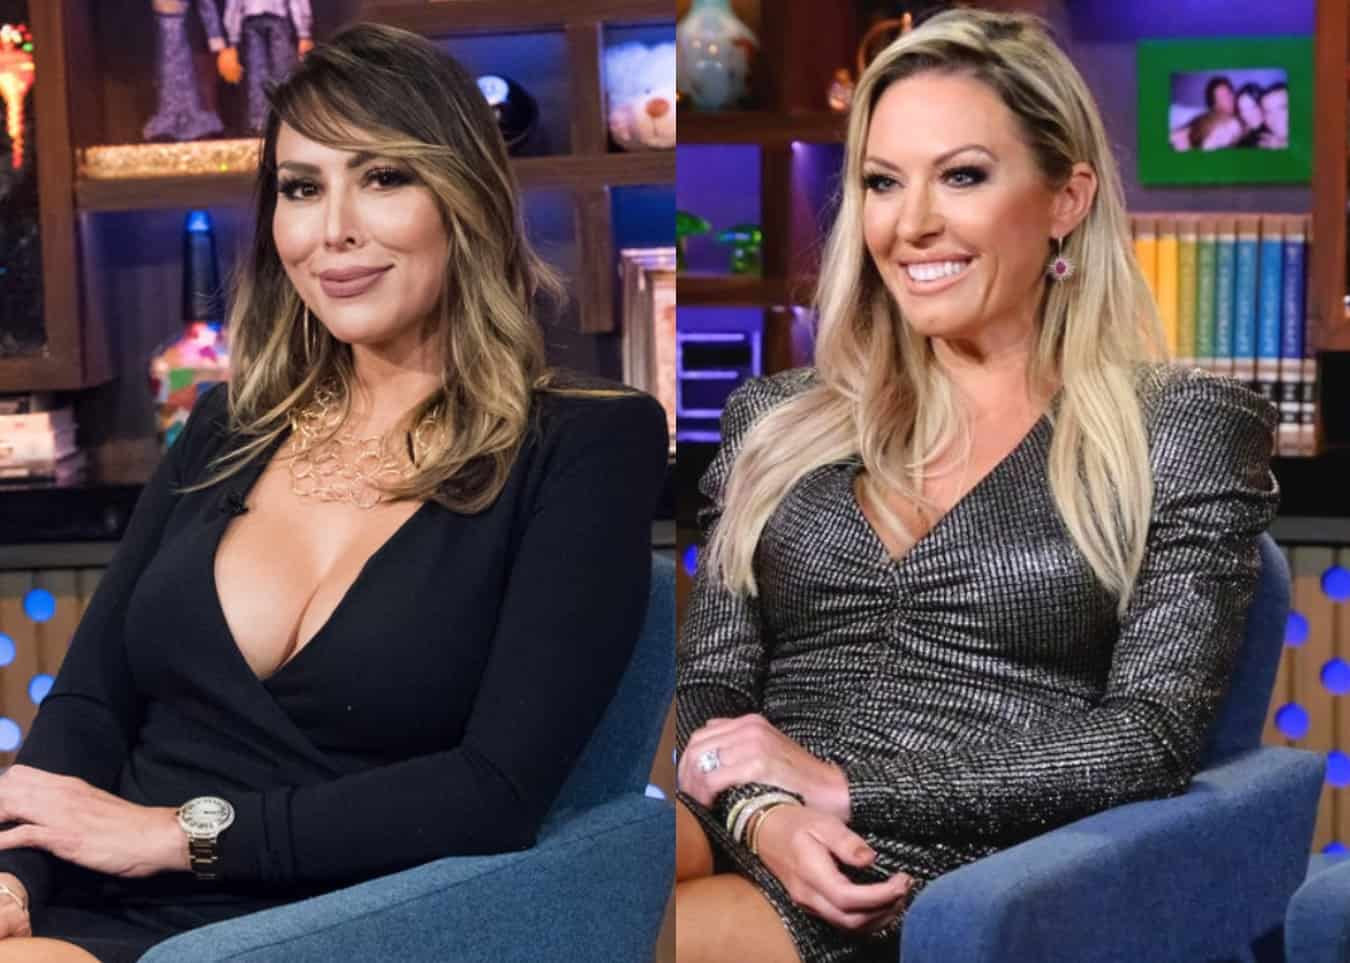 "'RHOC' Kelly Dodd Leaks Video of Braunwyn's License Plate and Accuses Her of Not Paying Taxes, Slams Her as ""Thirsty"" and a ""Loser,"" and Says She Looks 10 Years Older, See the Video She Took Outside of Braunwyn's Home"